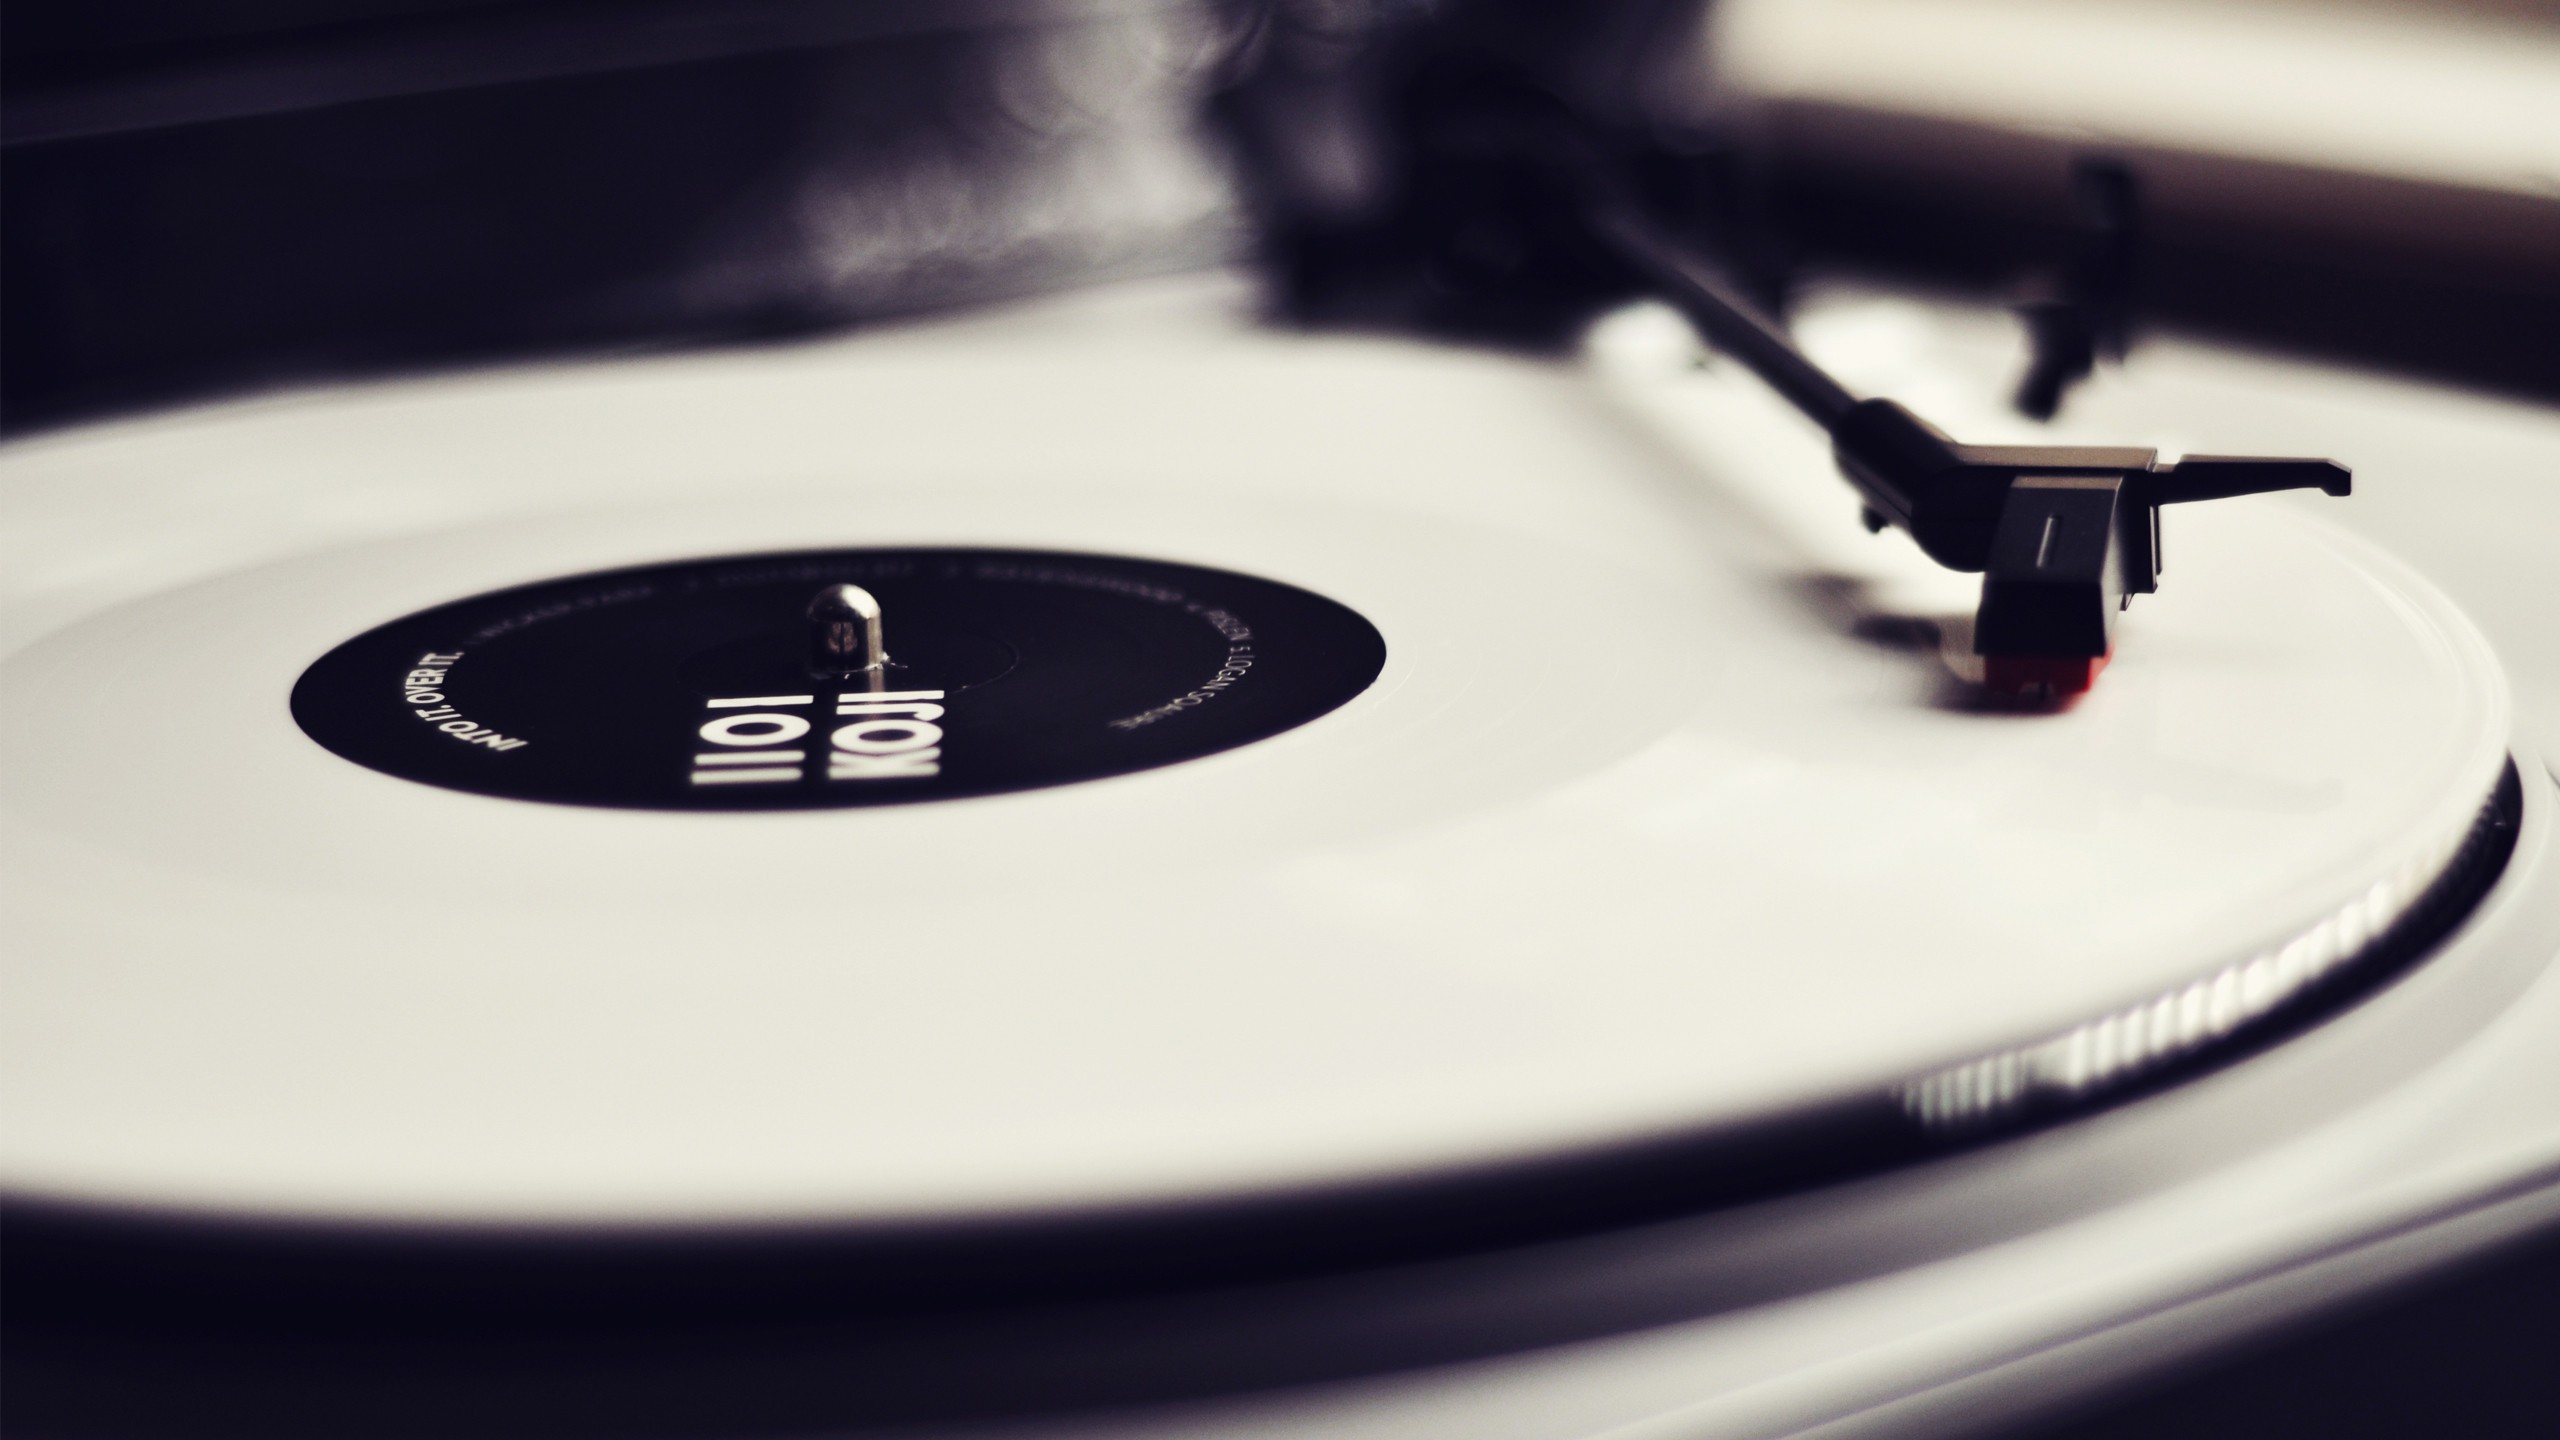 Record music wallpaper high definition high quality for Vinyl wallpaper